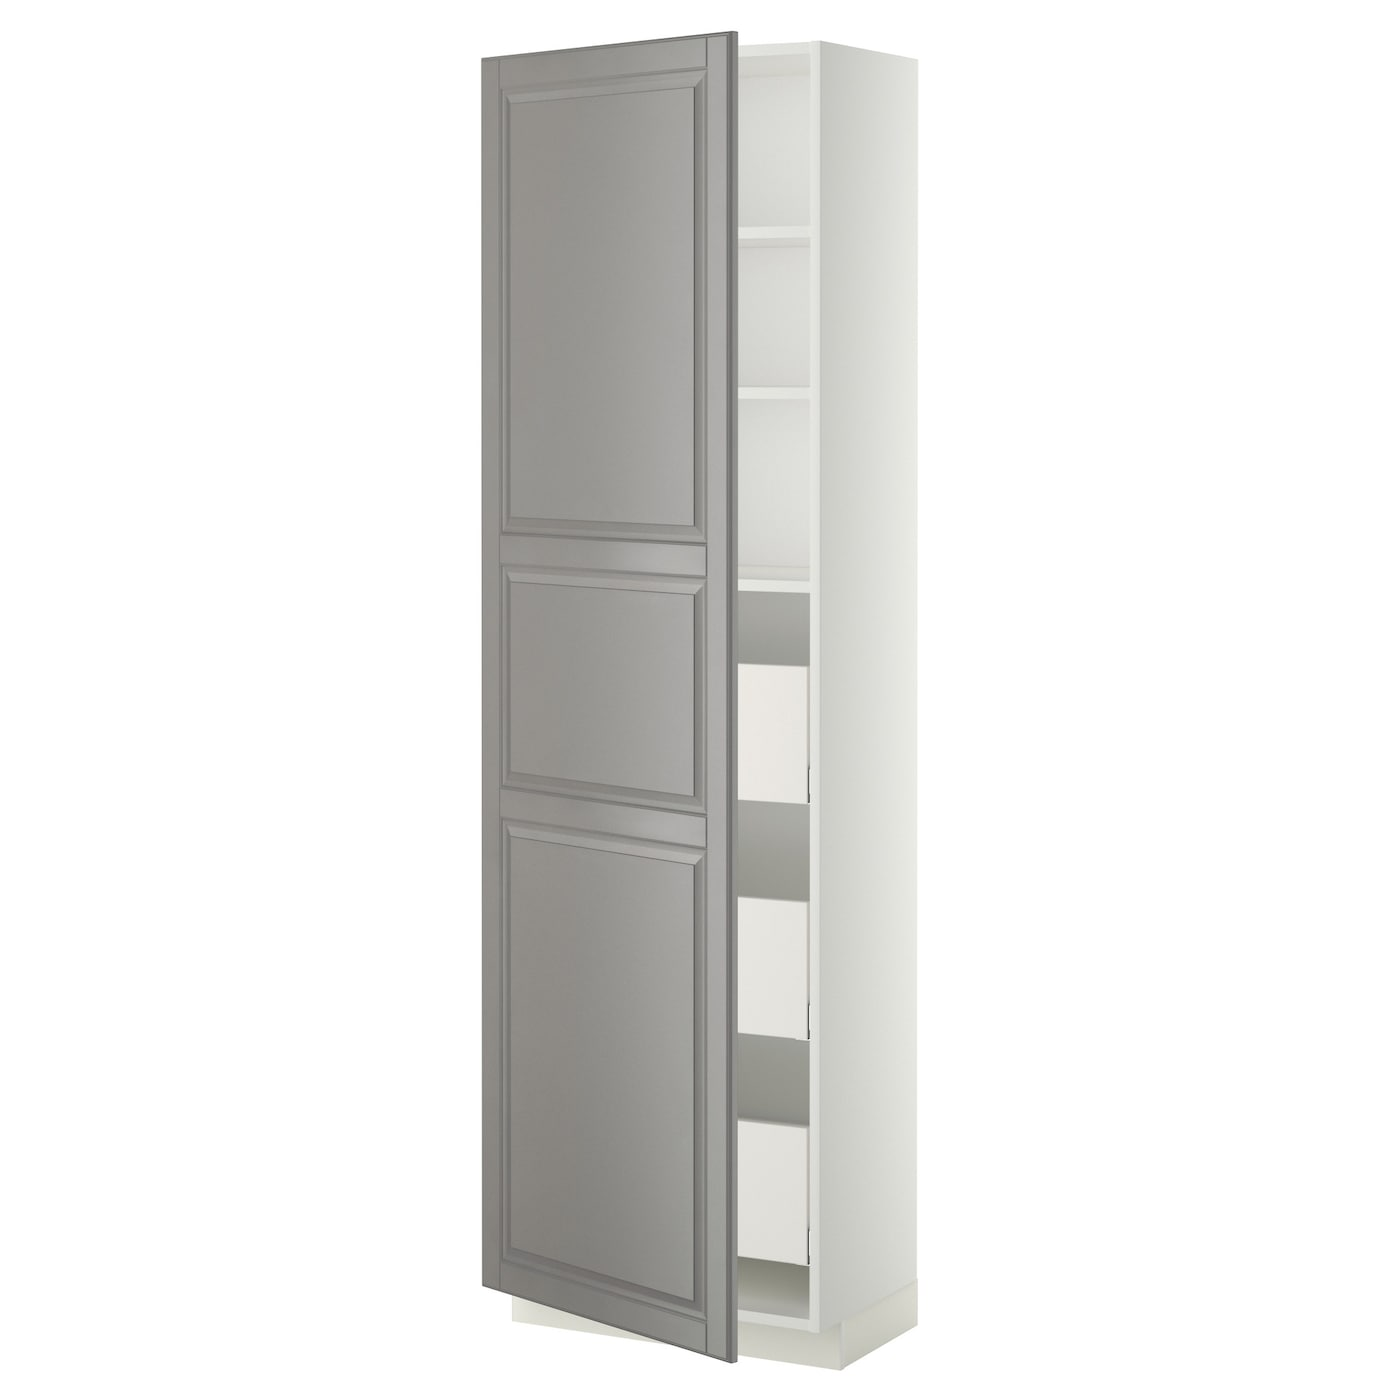 metod maximera high cabinet with drawers white bodbyn grey 60x37x200 cm ikea. Black Bedroom Furniture Sets. Home Design Ideas